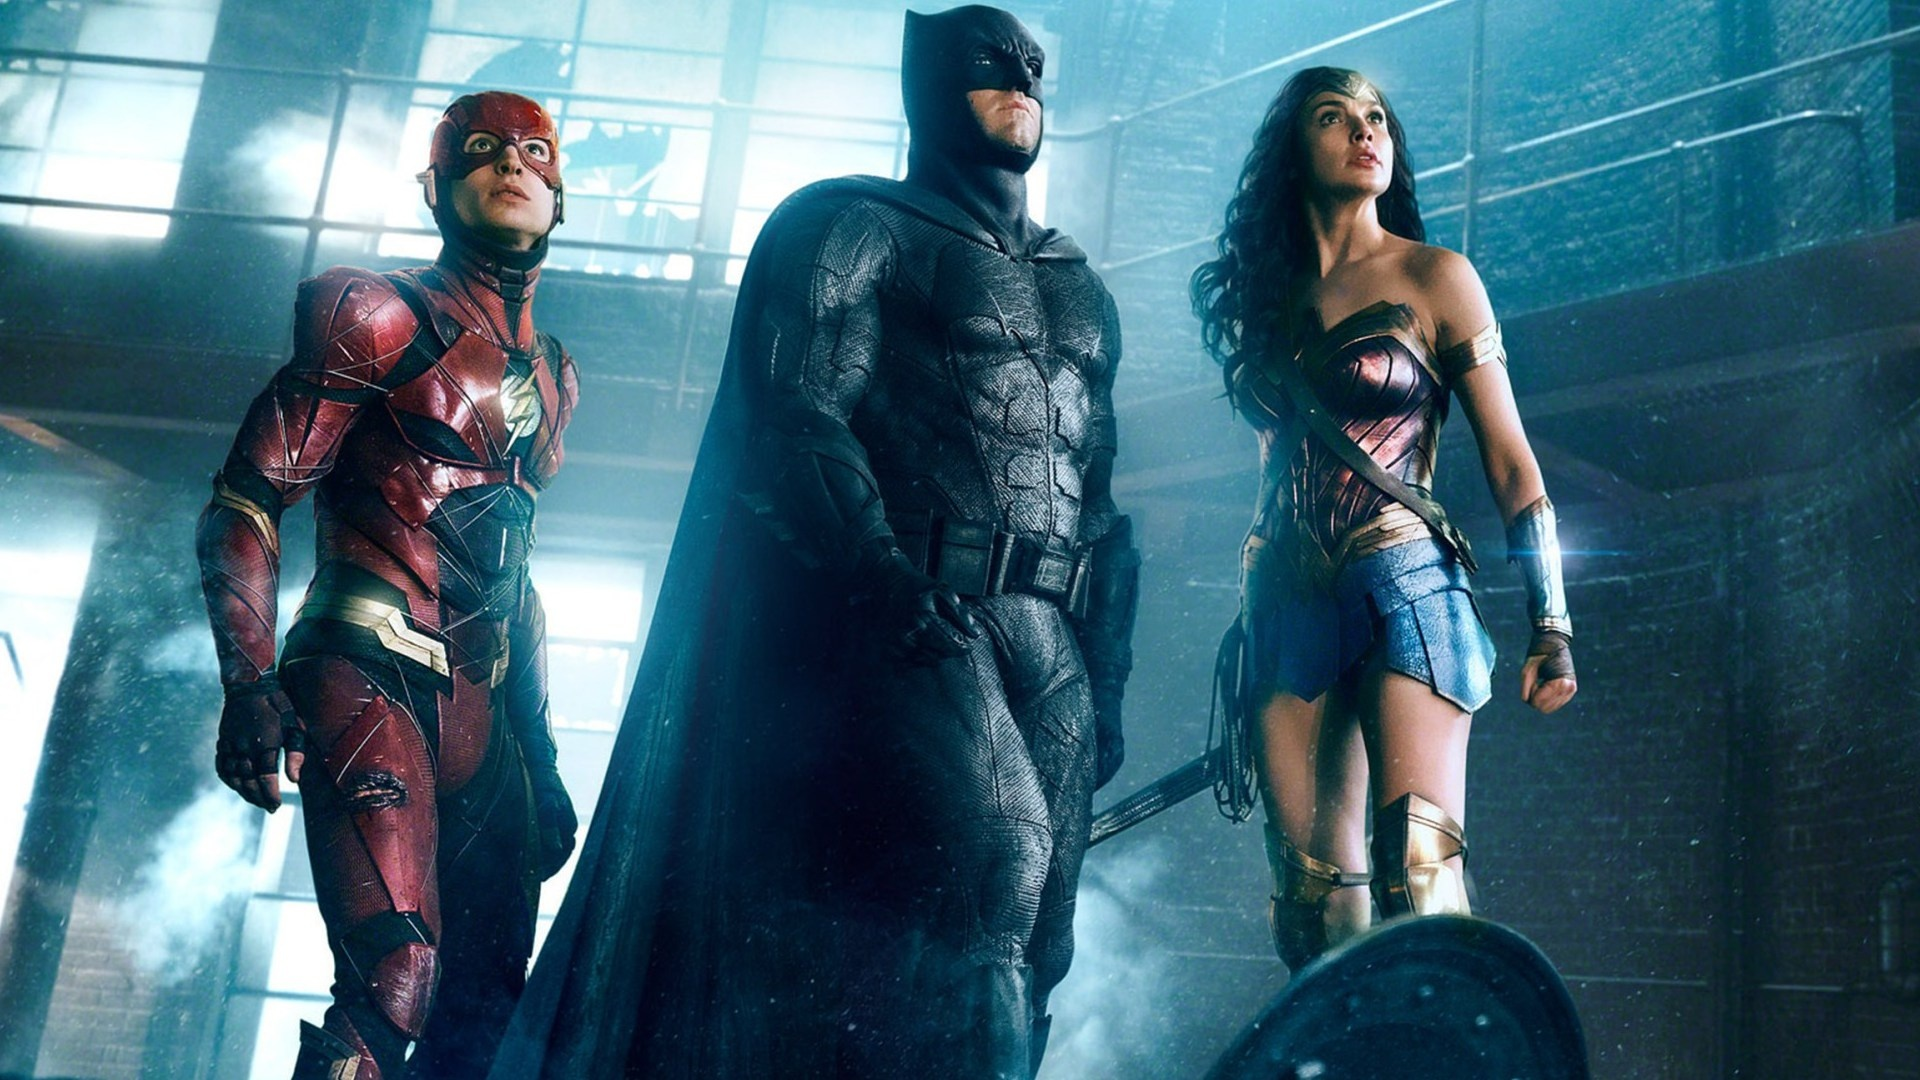 Batman Wonder Woman And The Flash Justice League Wallpapers